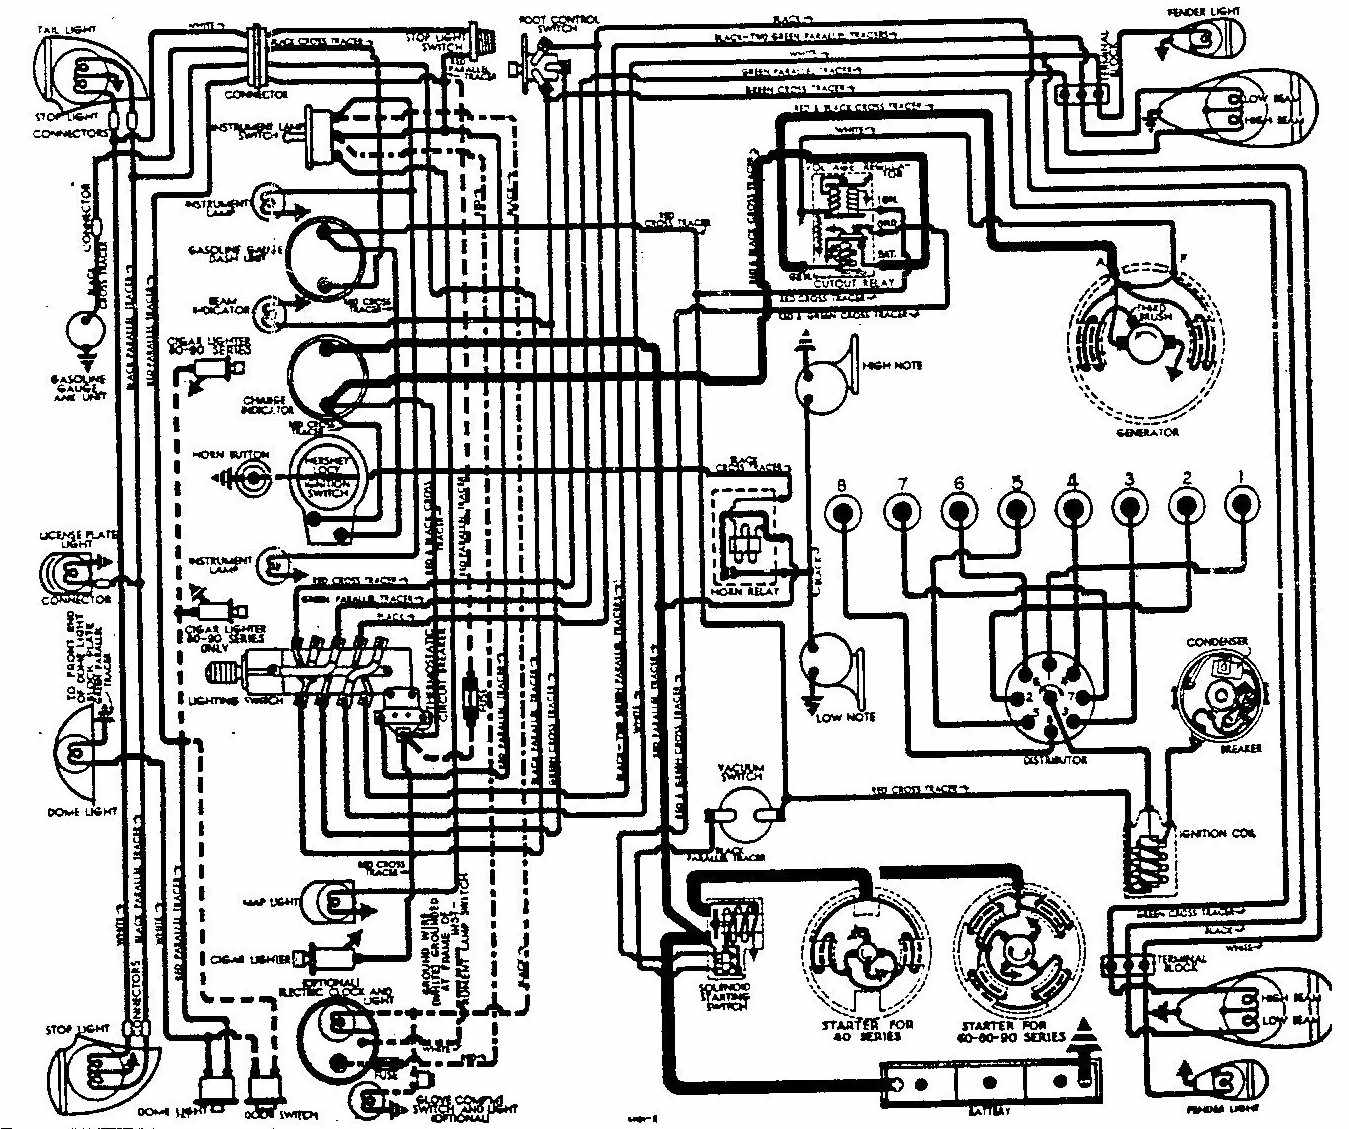 1952 ford wiring diagram ford tractor wiring diagrams wiring diagram Dome Light Switch Wiring Diagram wiring diagram for ford the wiring diagram ford 2000 tractor wiring diagram nodasystech wiring diagram